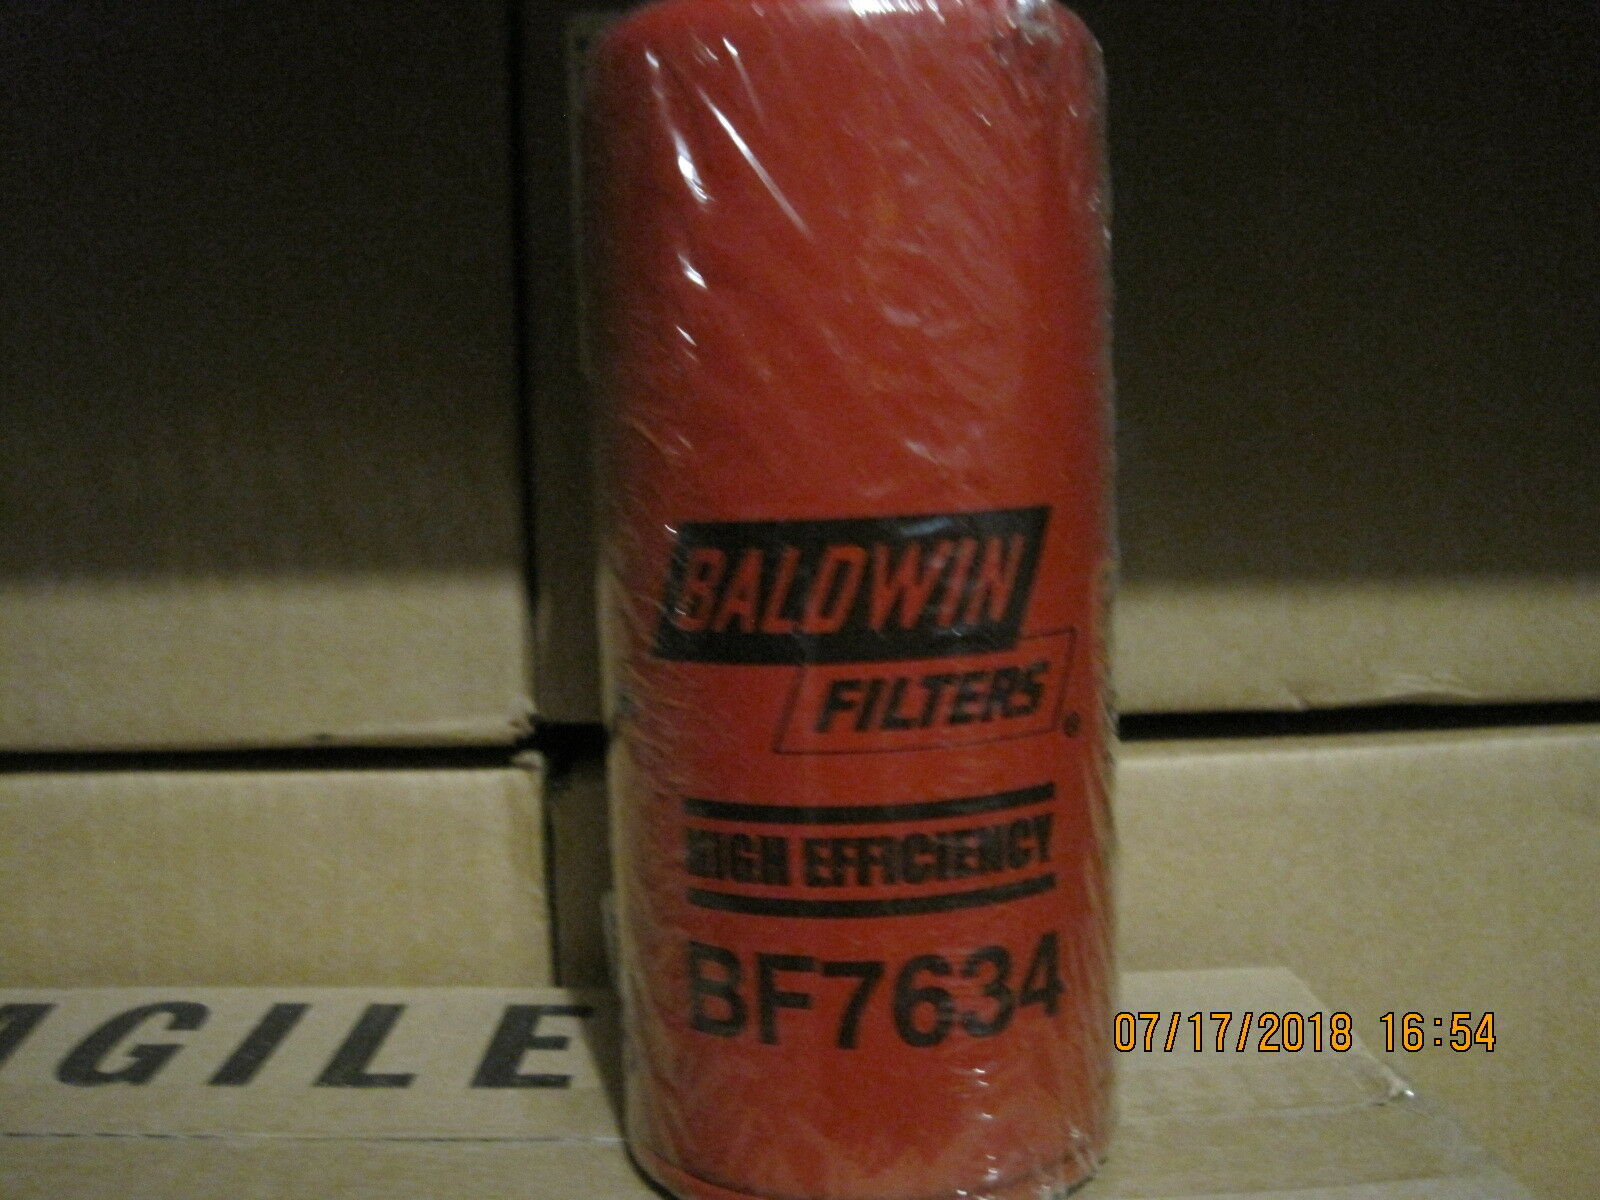 Pureflow Replacement Fuel Filter by Baldwin BF7634 replaces FF100 AirDog